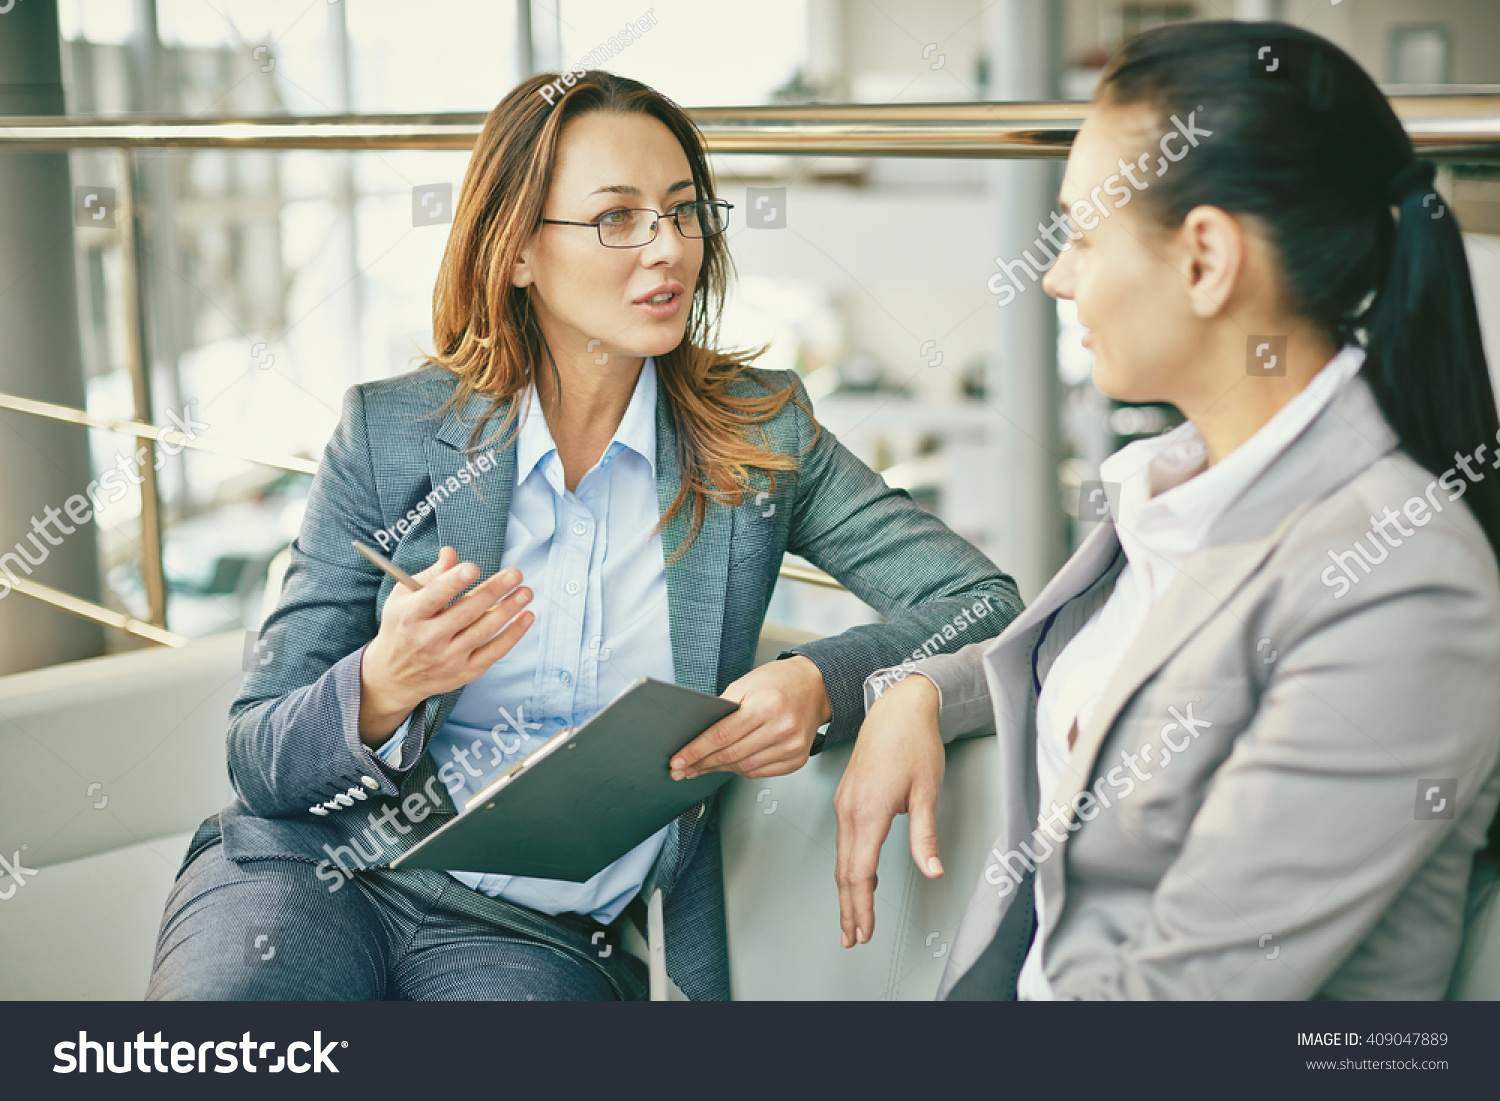 hr manager asking questions female candidate stock photo  hr manager asking questions to female candidate